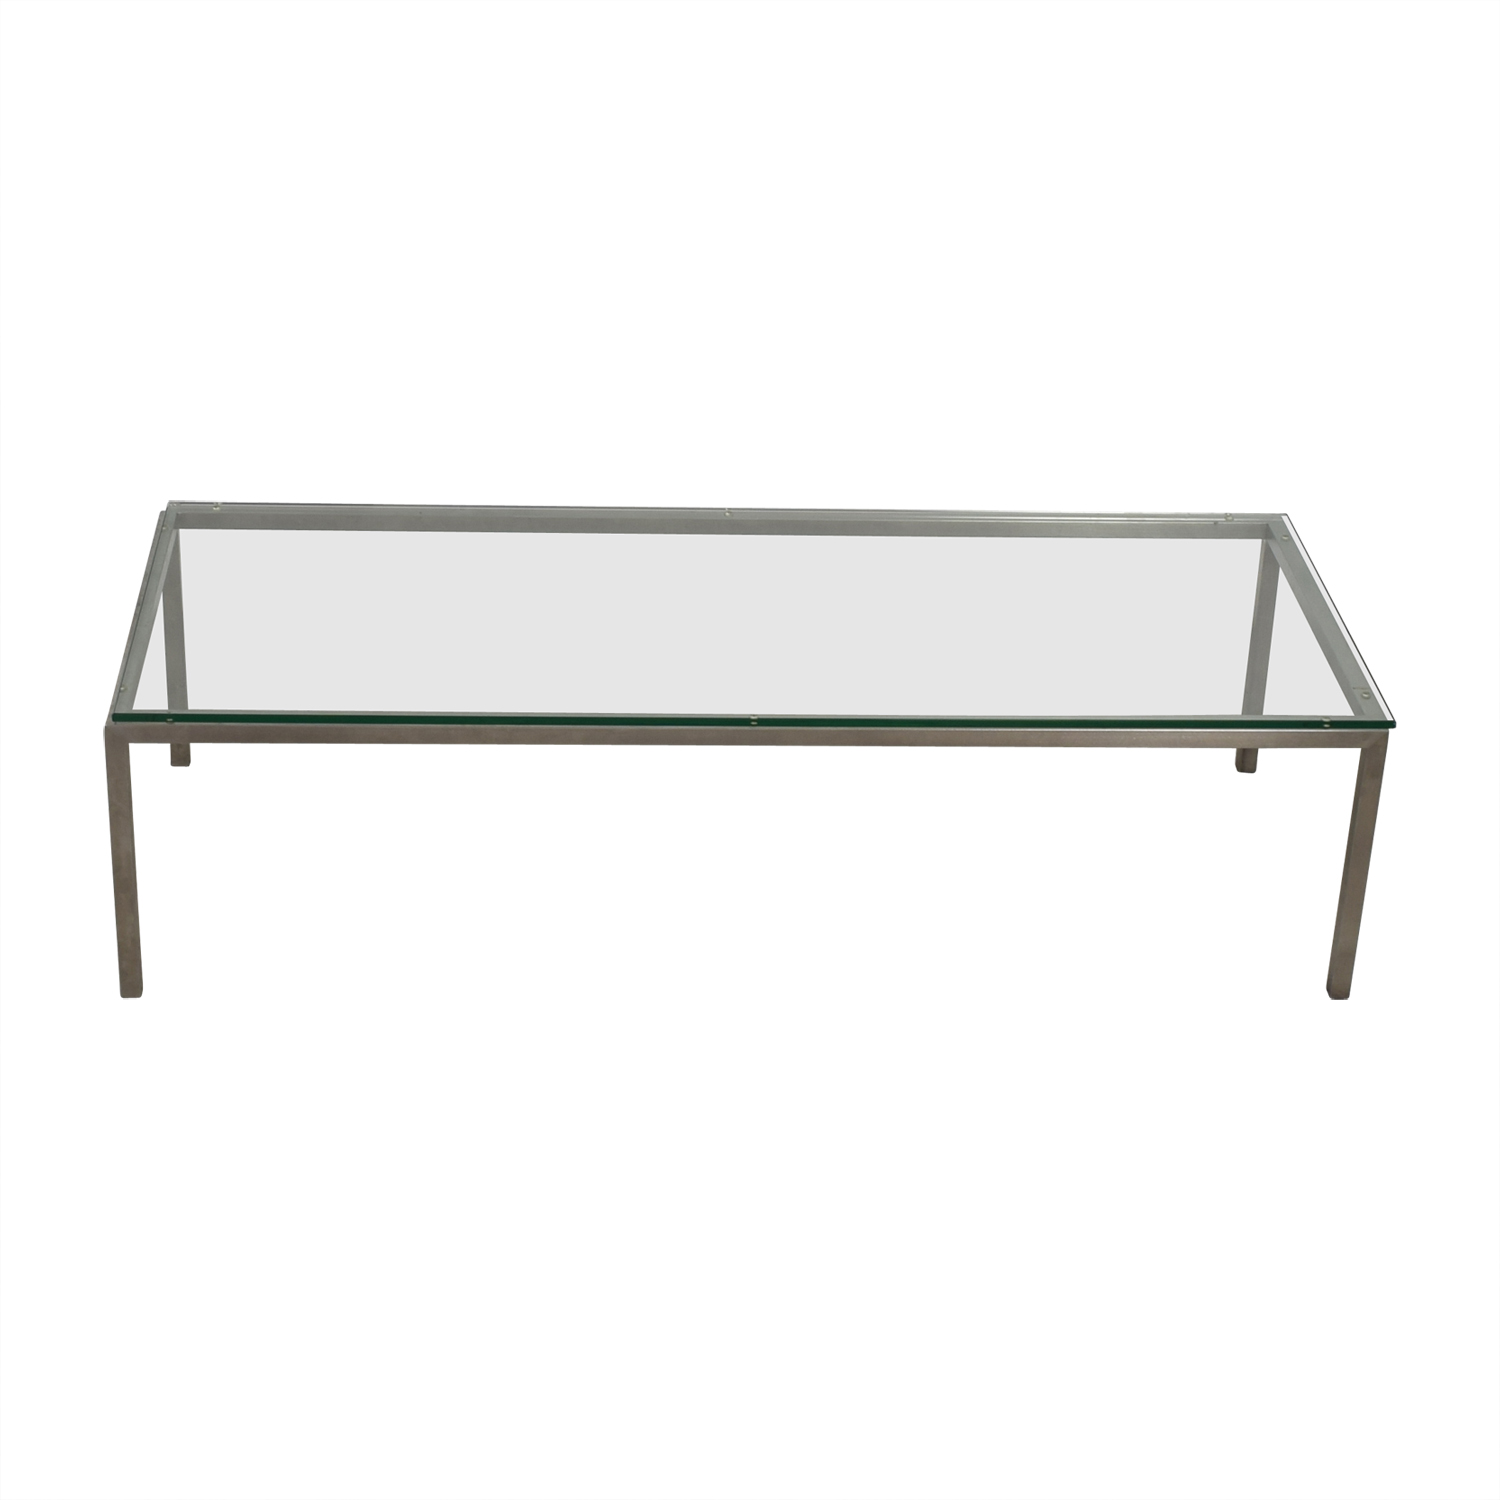 Room & Board Room & Board Portica Glass & Chrome Cocktail Table used